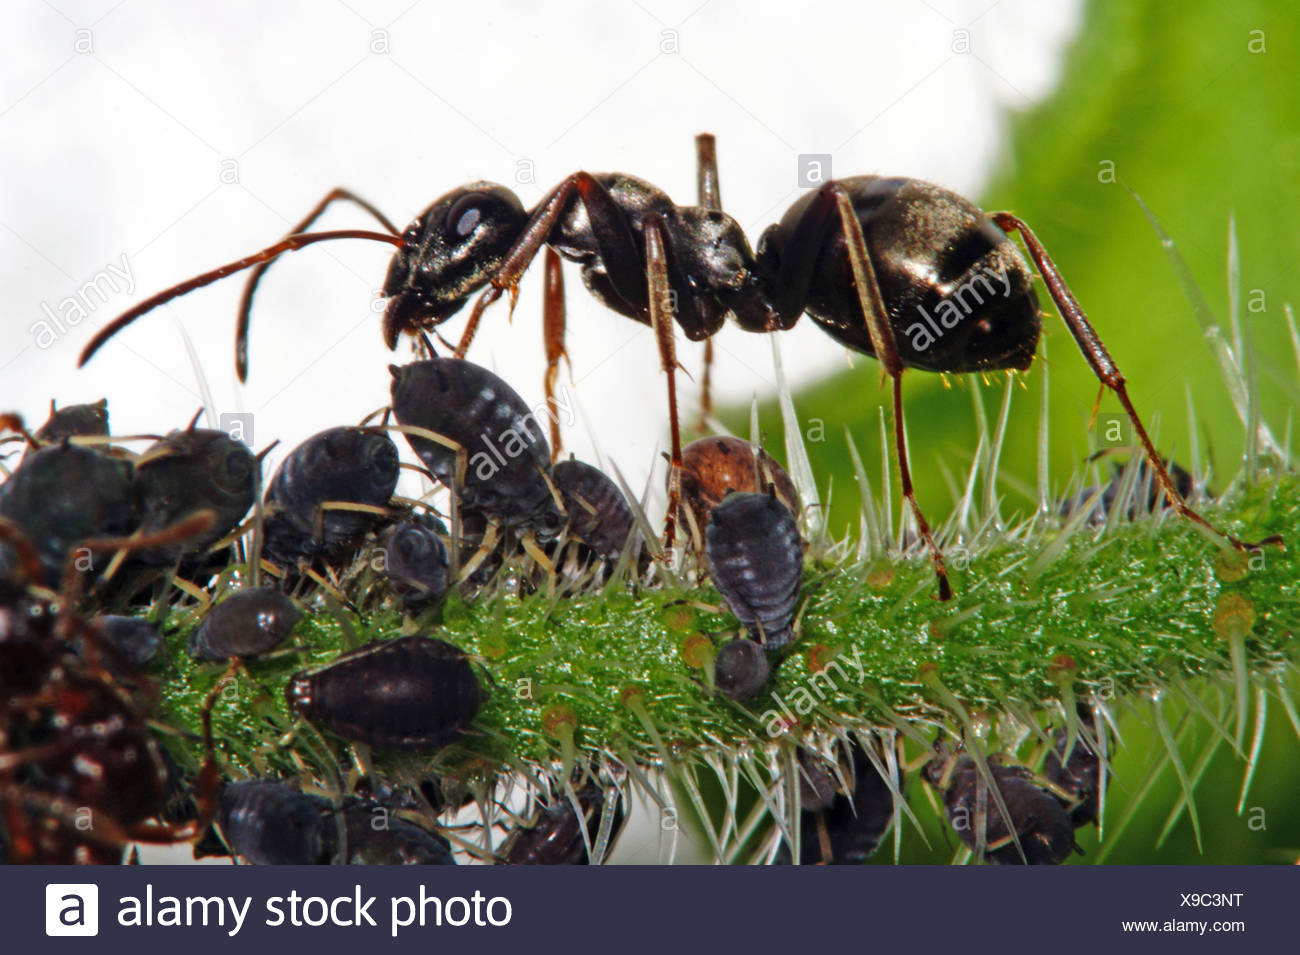 ants (Formicidae), ant melking aphids, Germany, North Rhine-Westphalia - Stock Image